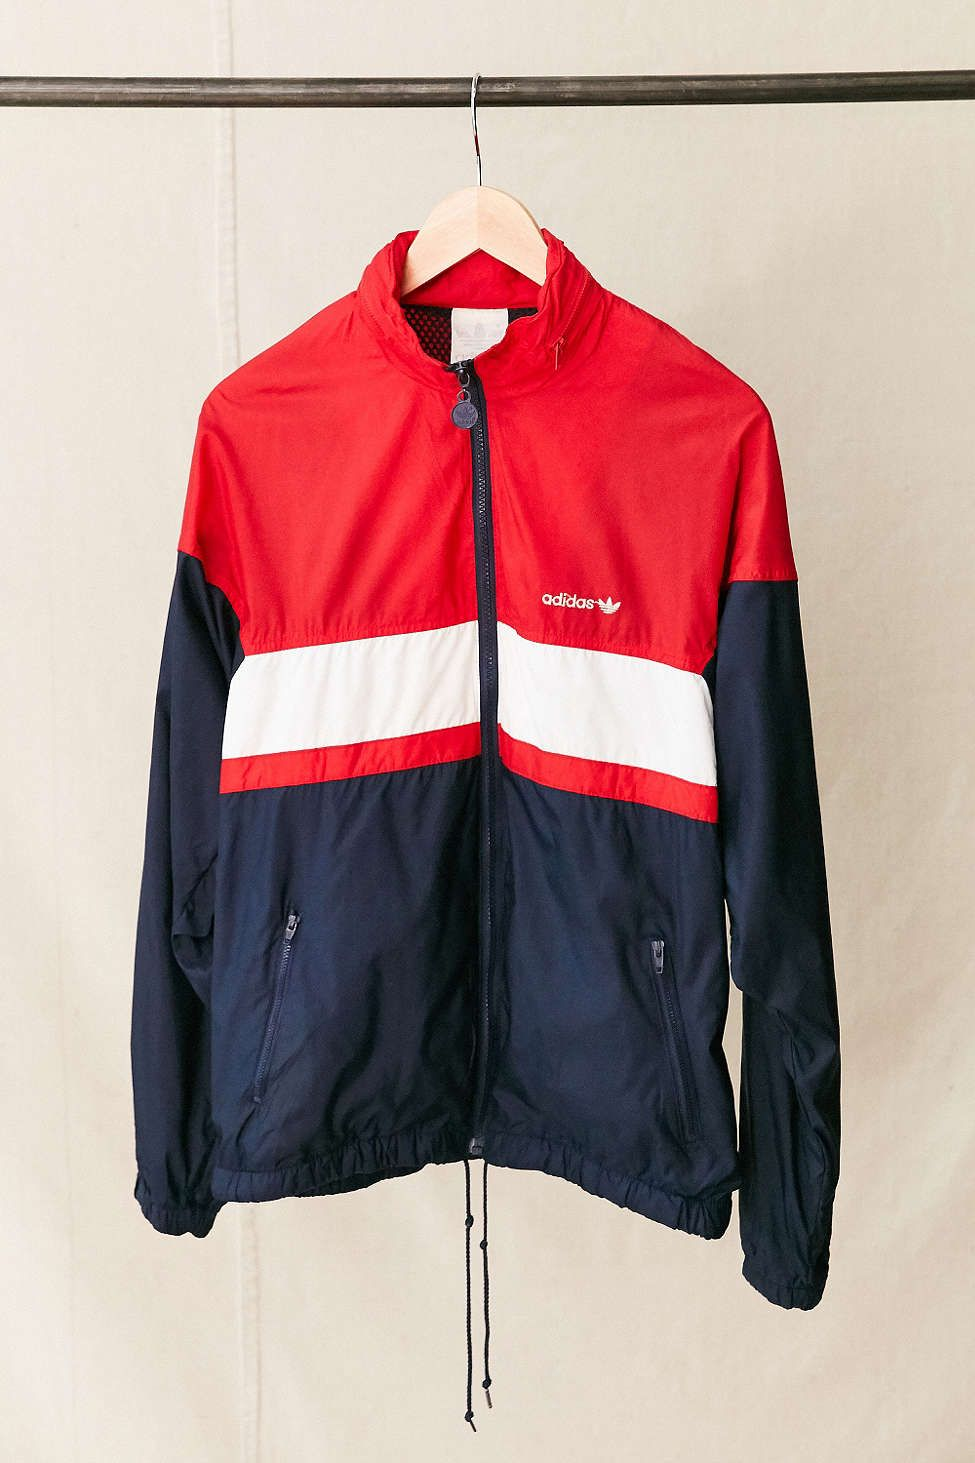 Vintage Adidas Red White Blue Windbreaker Jacket With Images